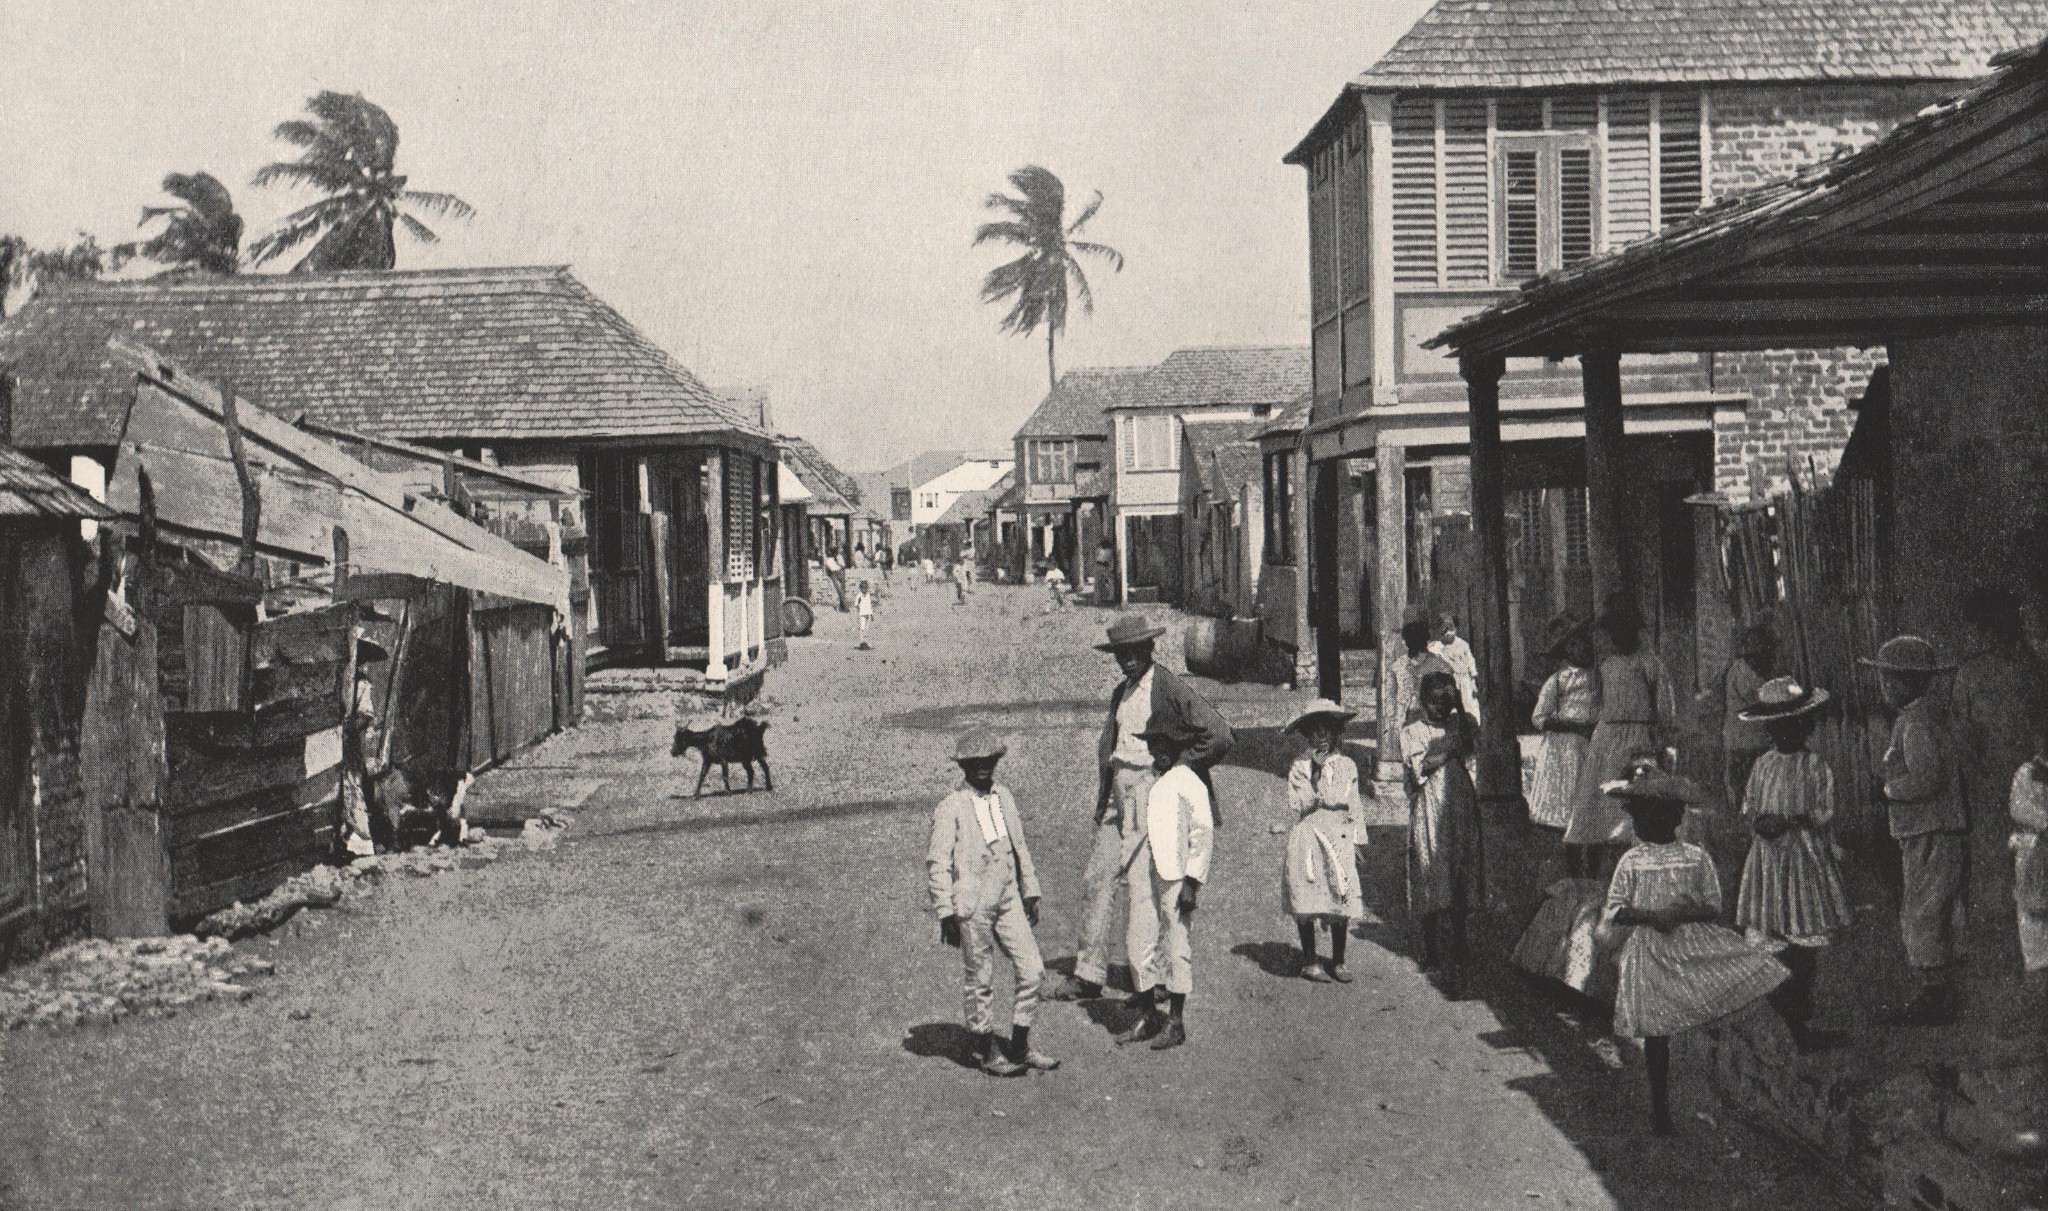 Story of cities #9: Kingston, Jamaica – a city born of 'wickedness' and disaster